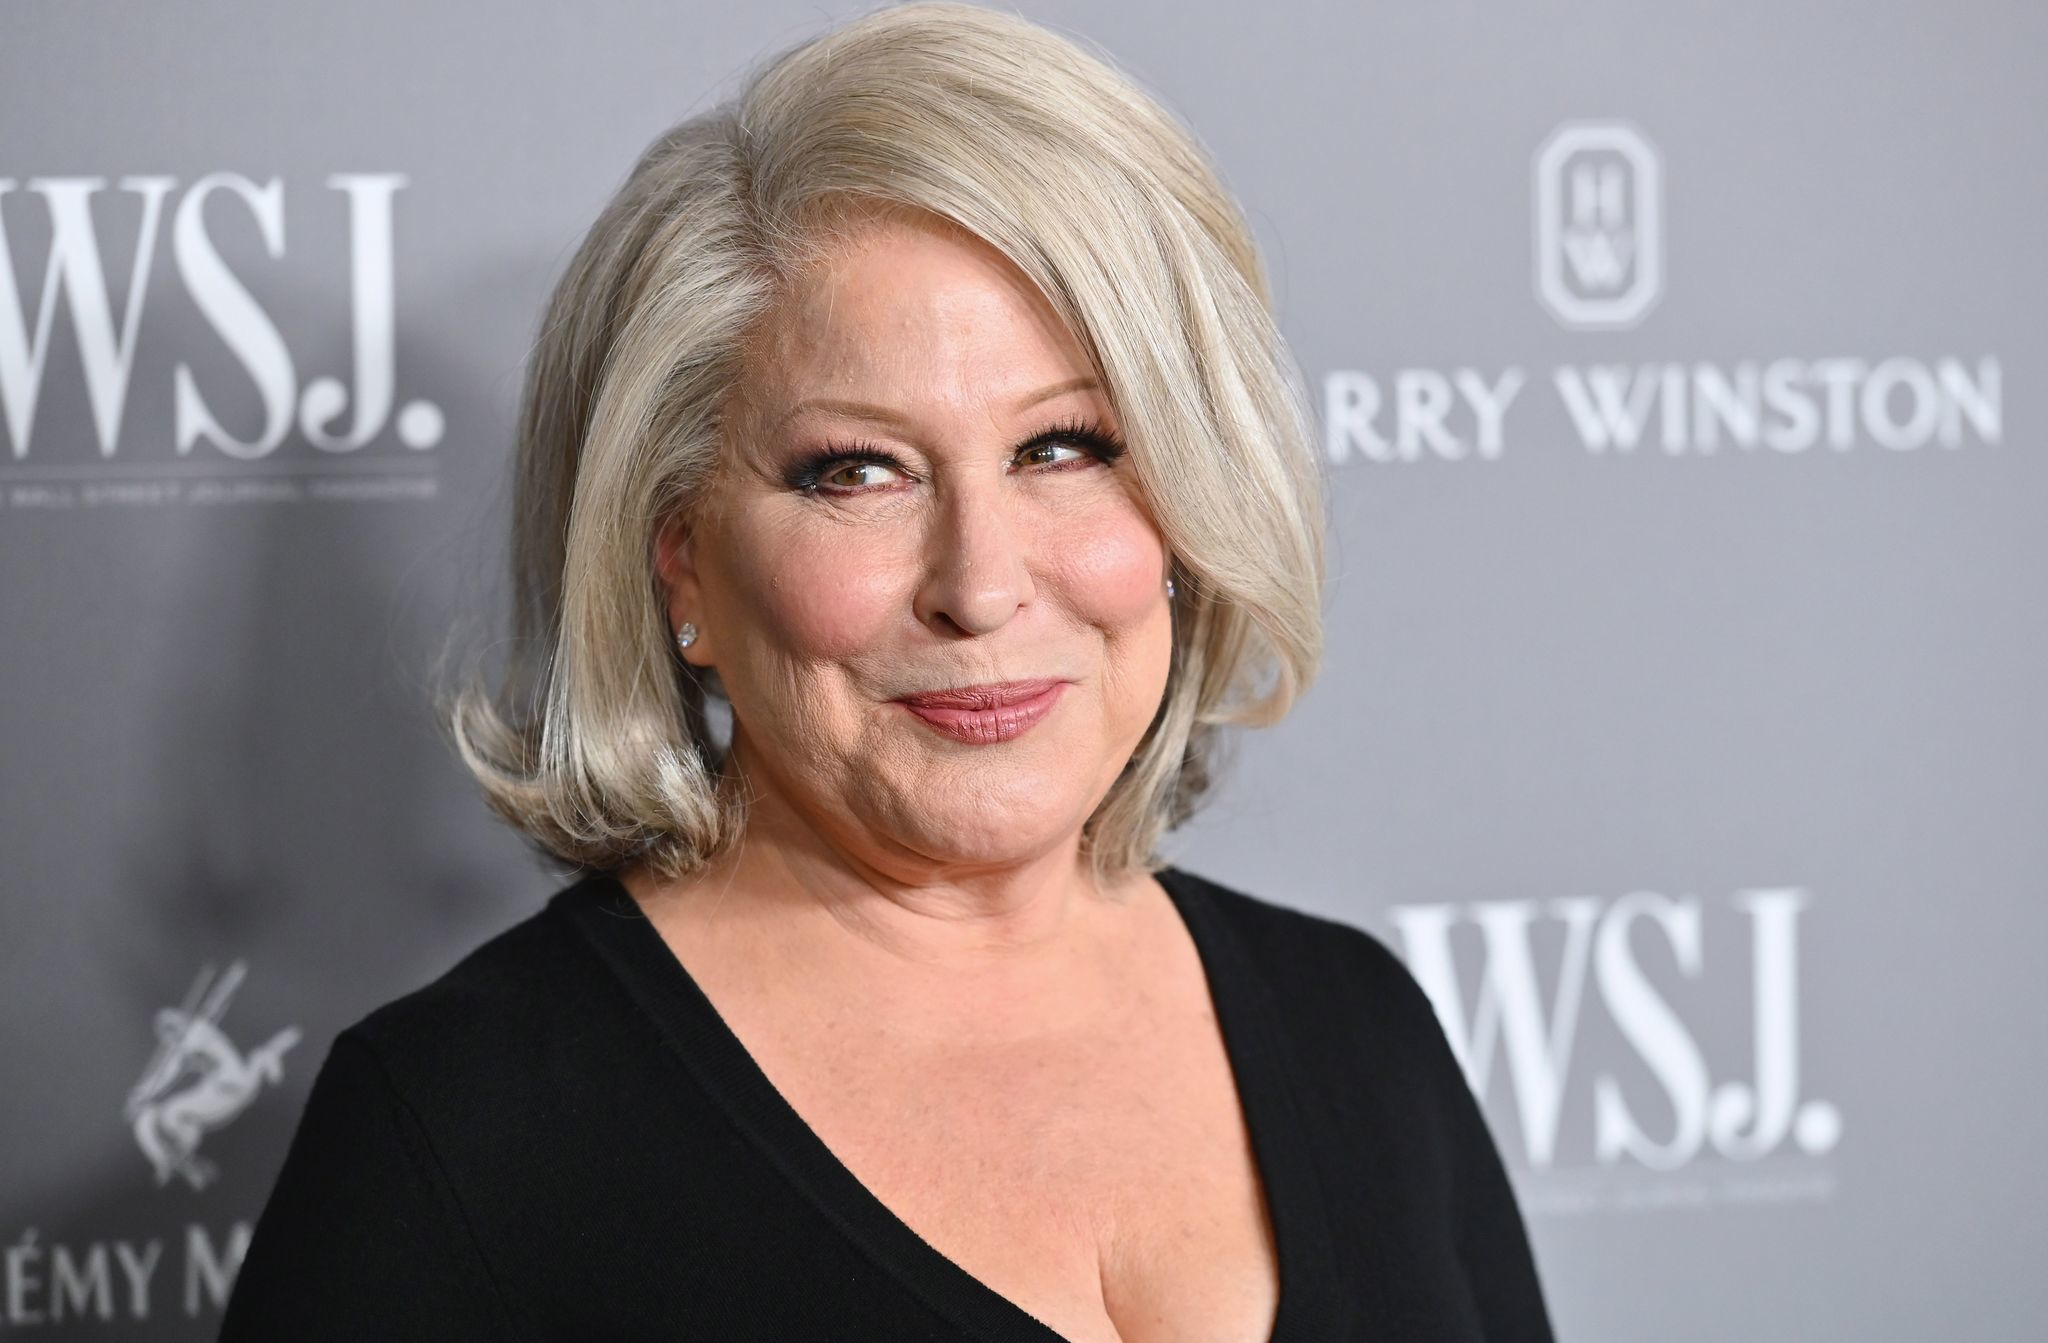 Bette Midler says she'll match Pink's $500K donation to Australia; slams Rupert Murdoch